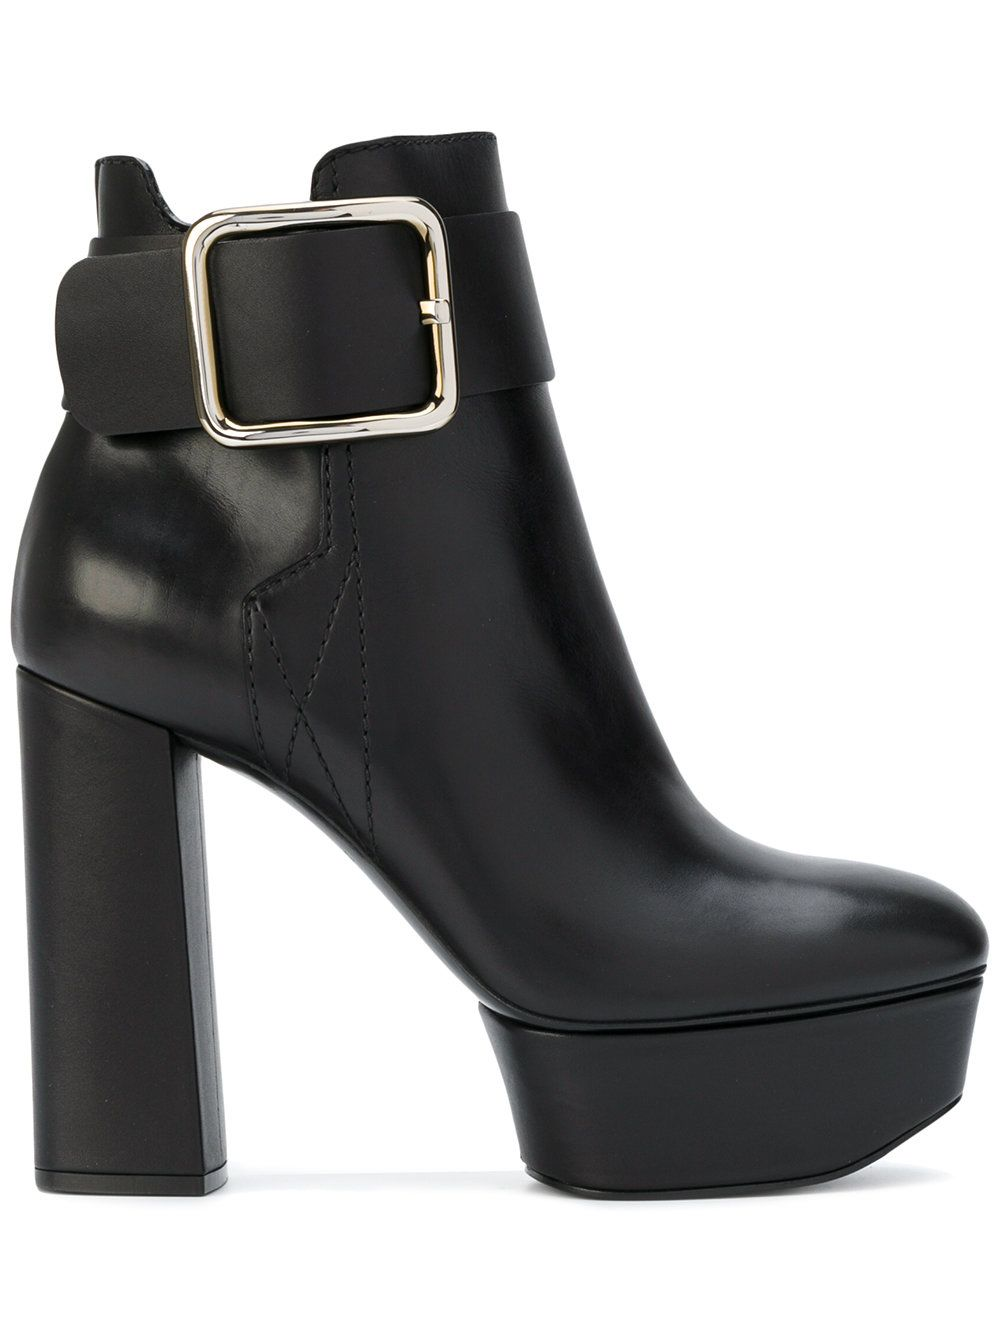 Casadei Leather Platform Boots